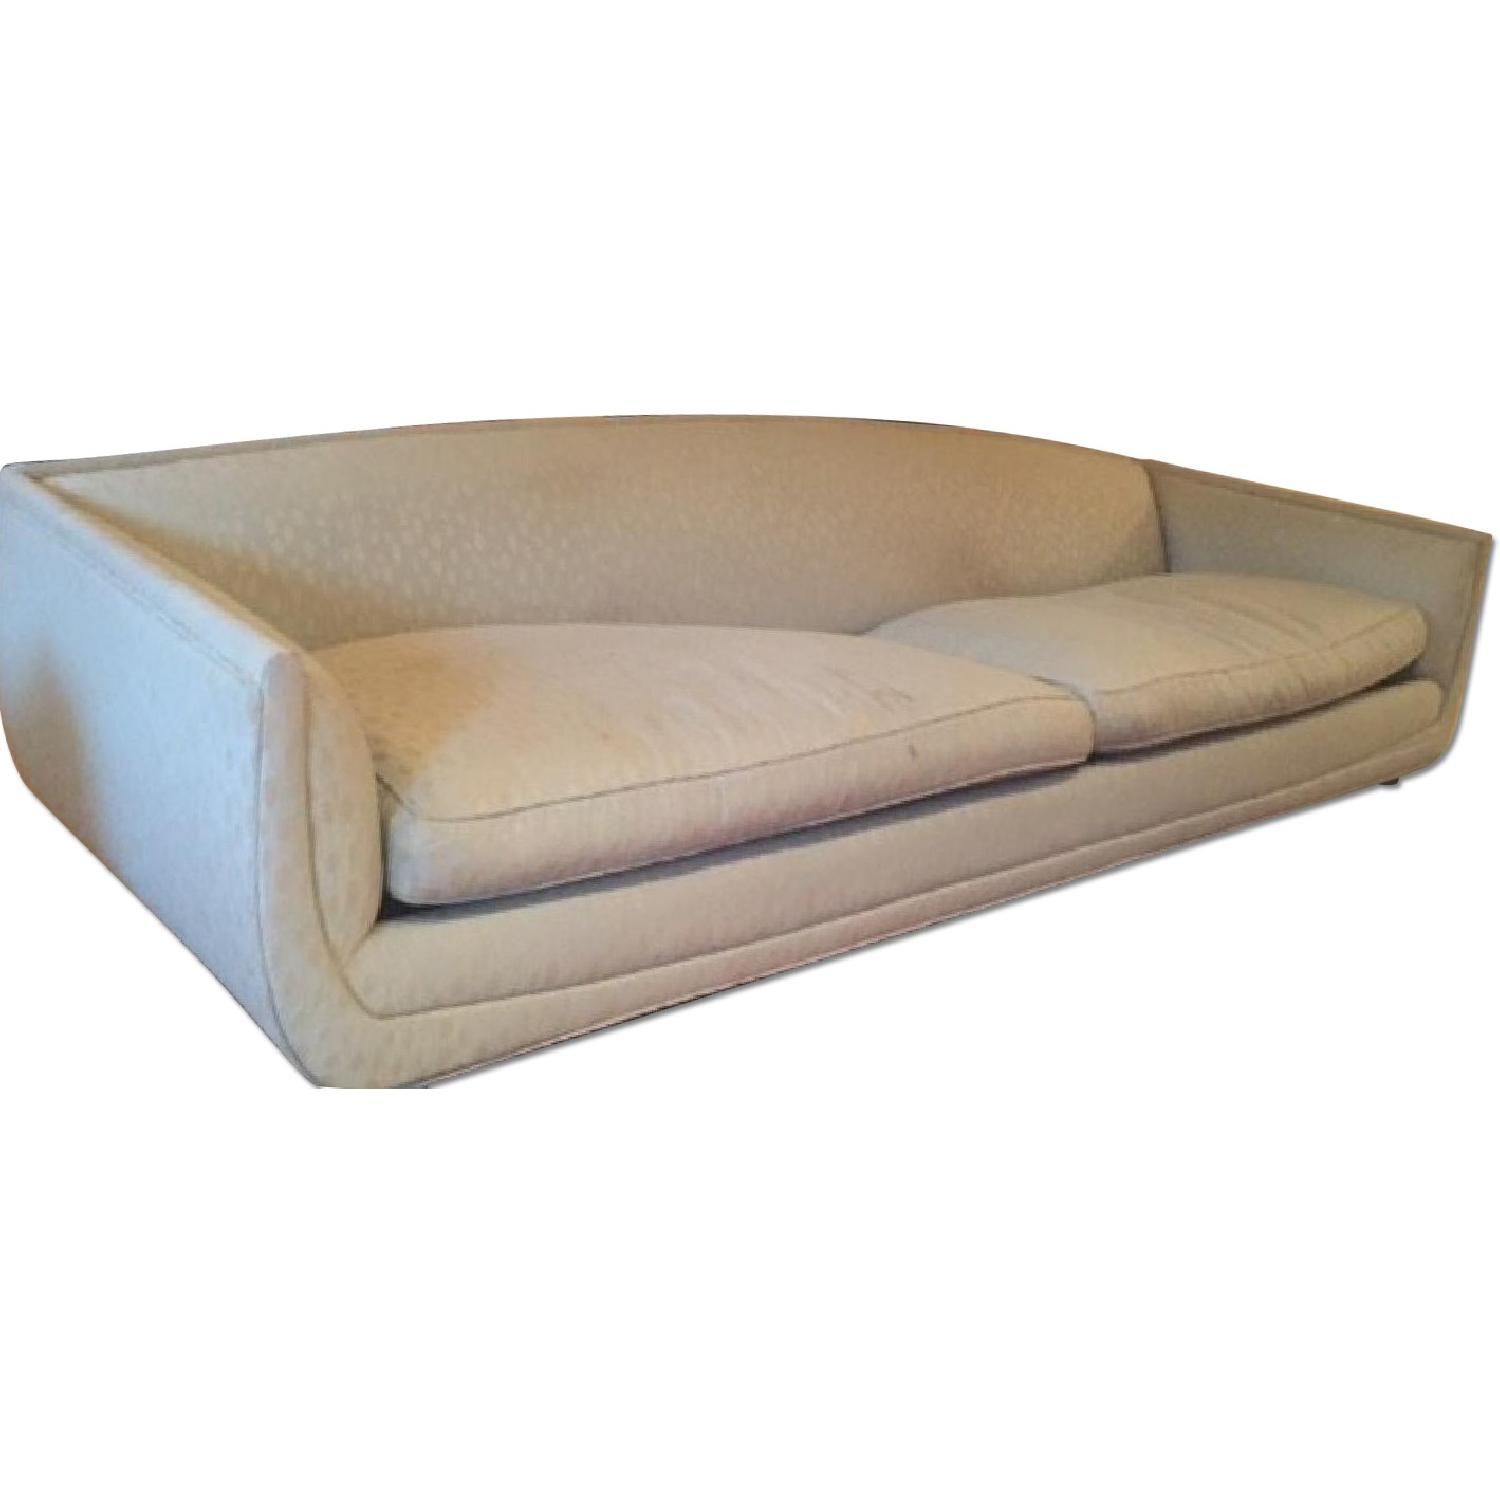 Vintage Couch - image-0